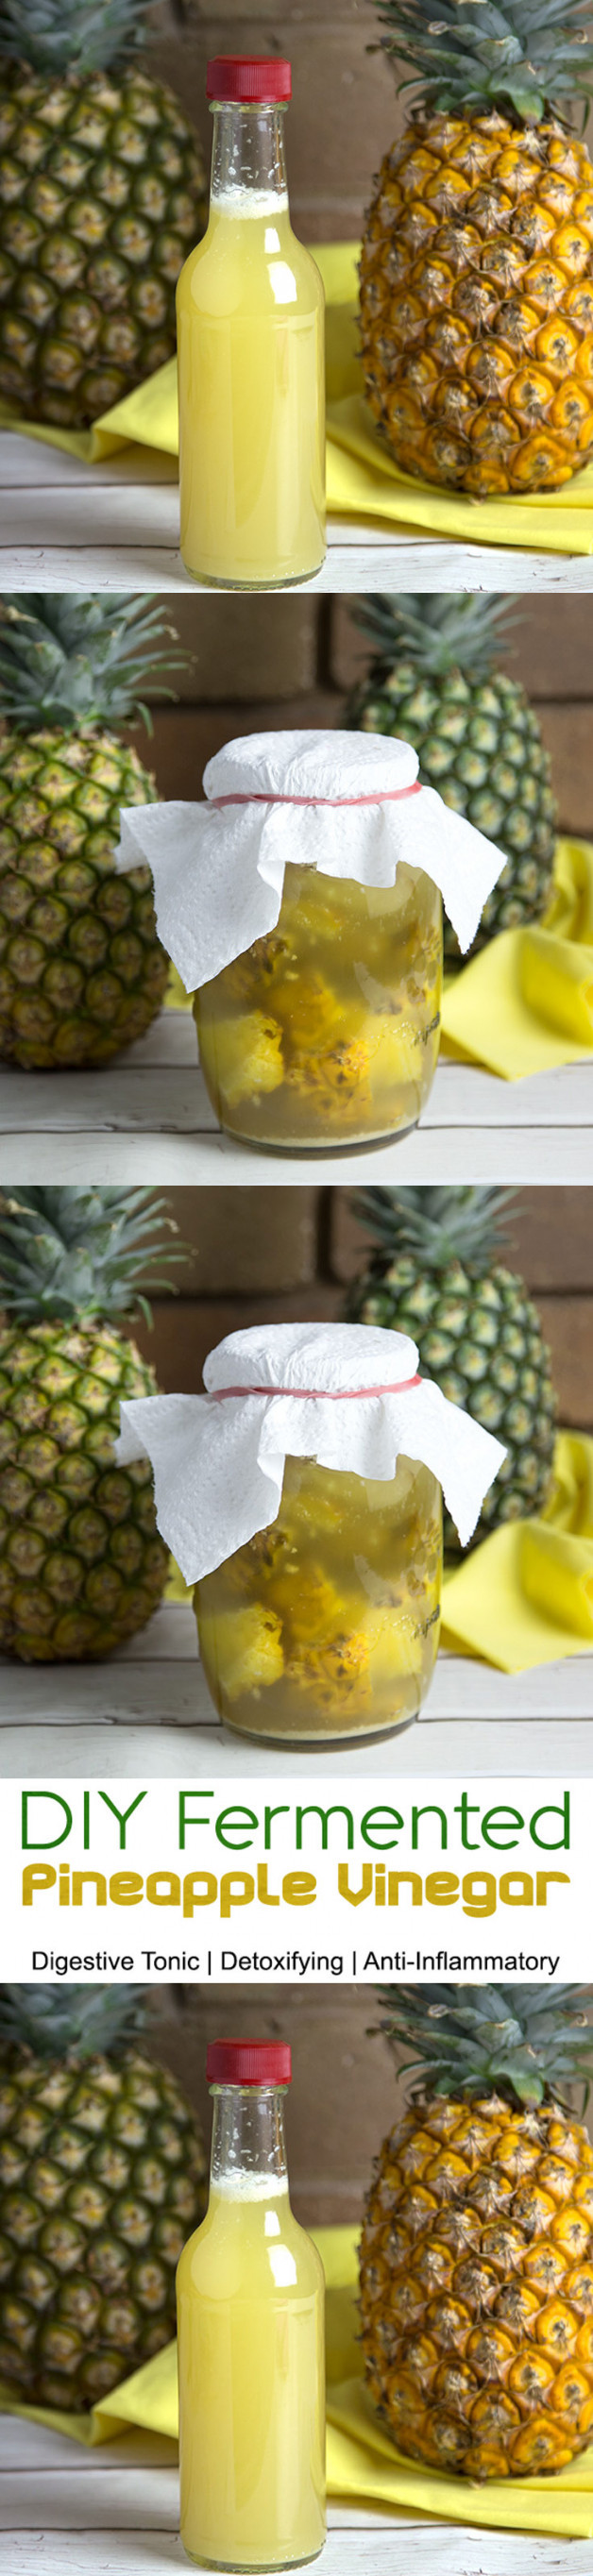 Homemade Fermented Pineapple Vinegar